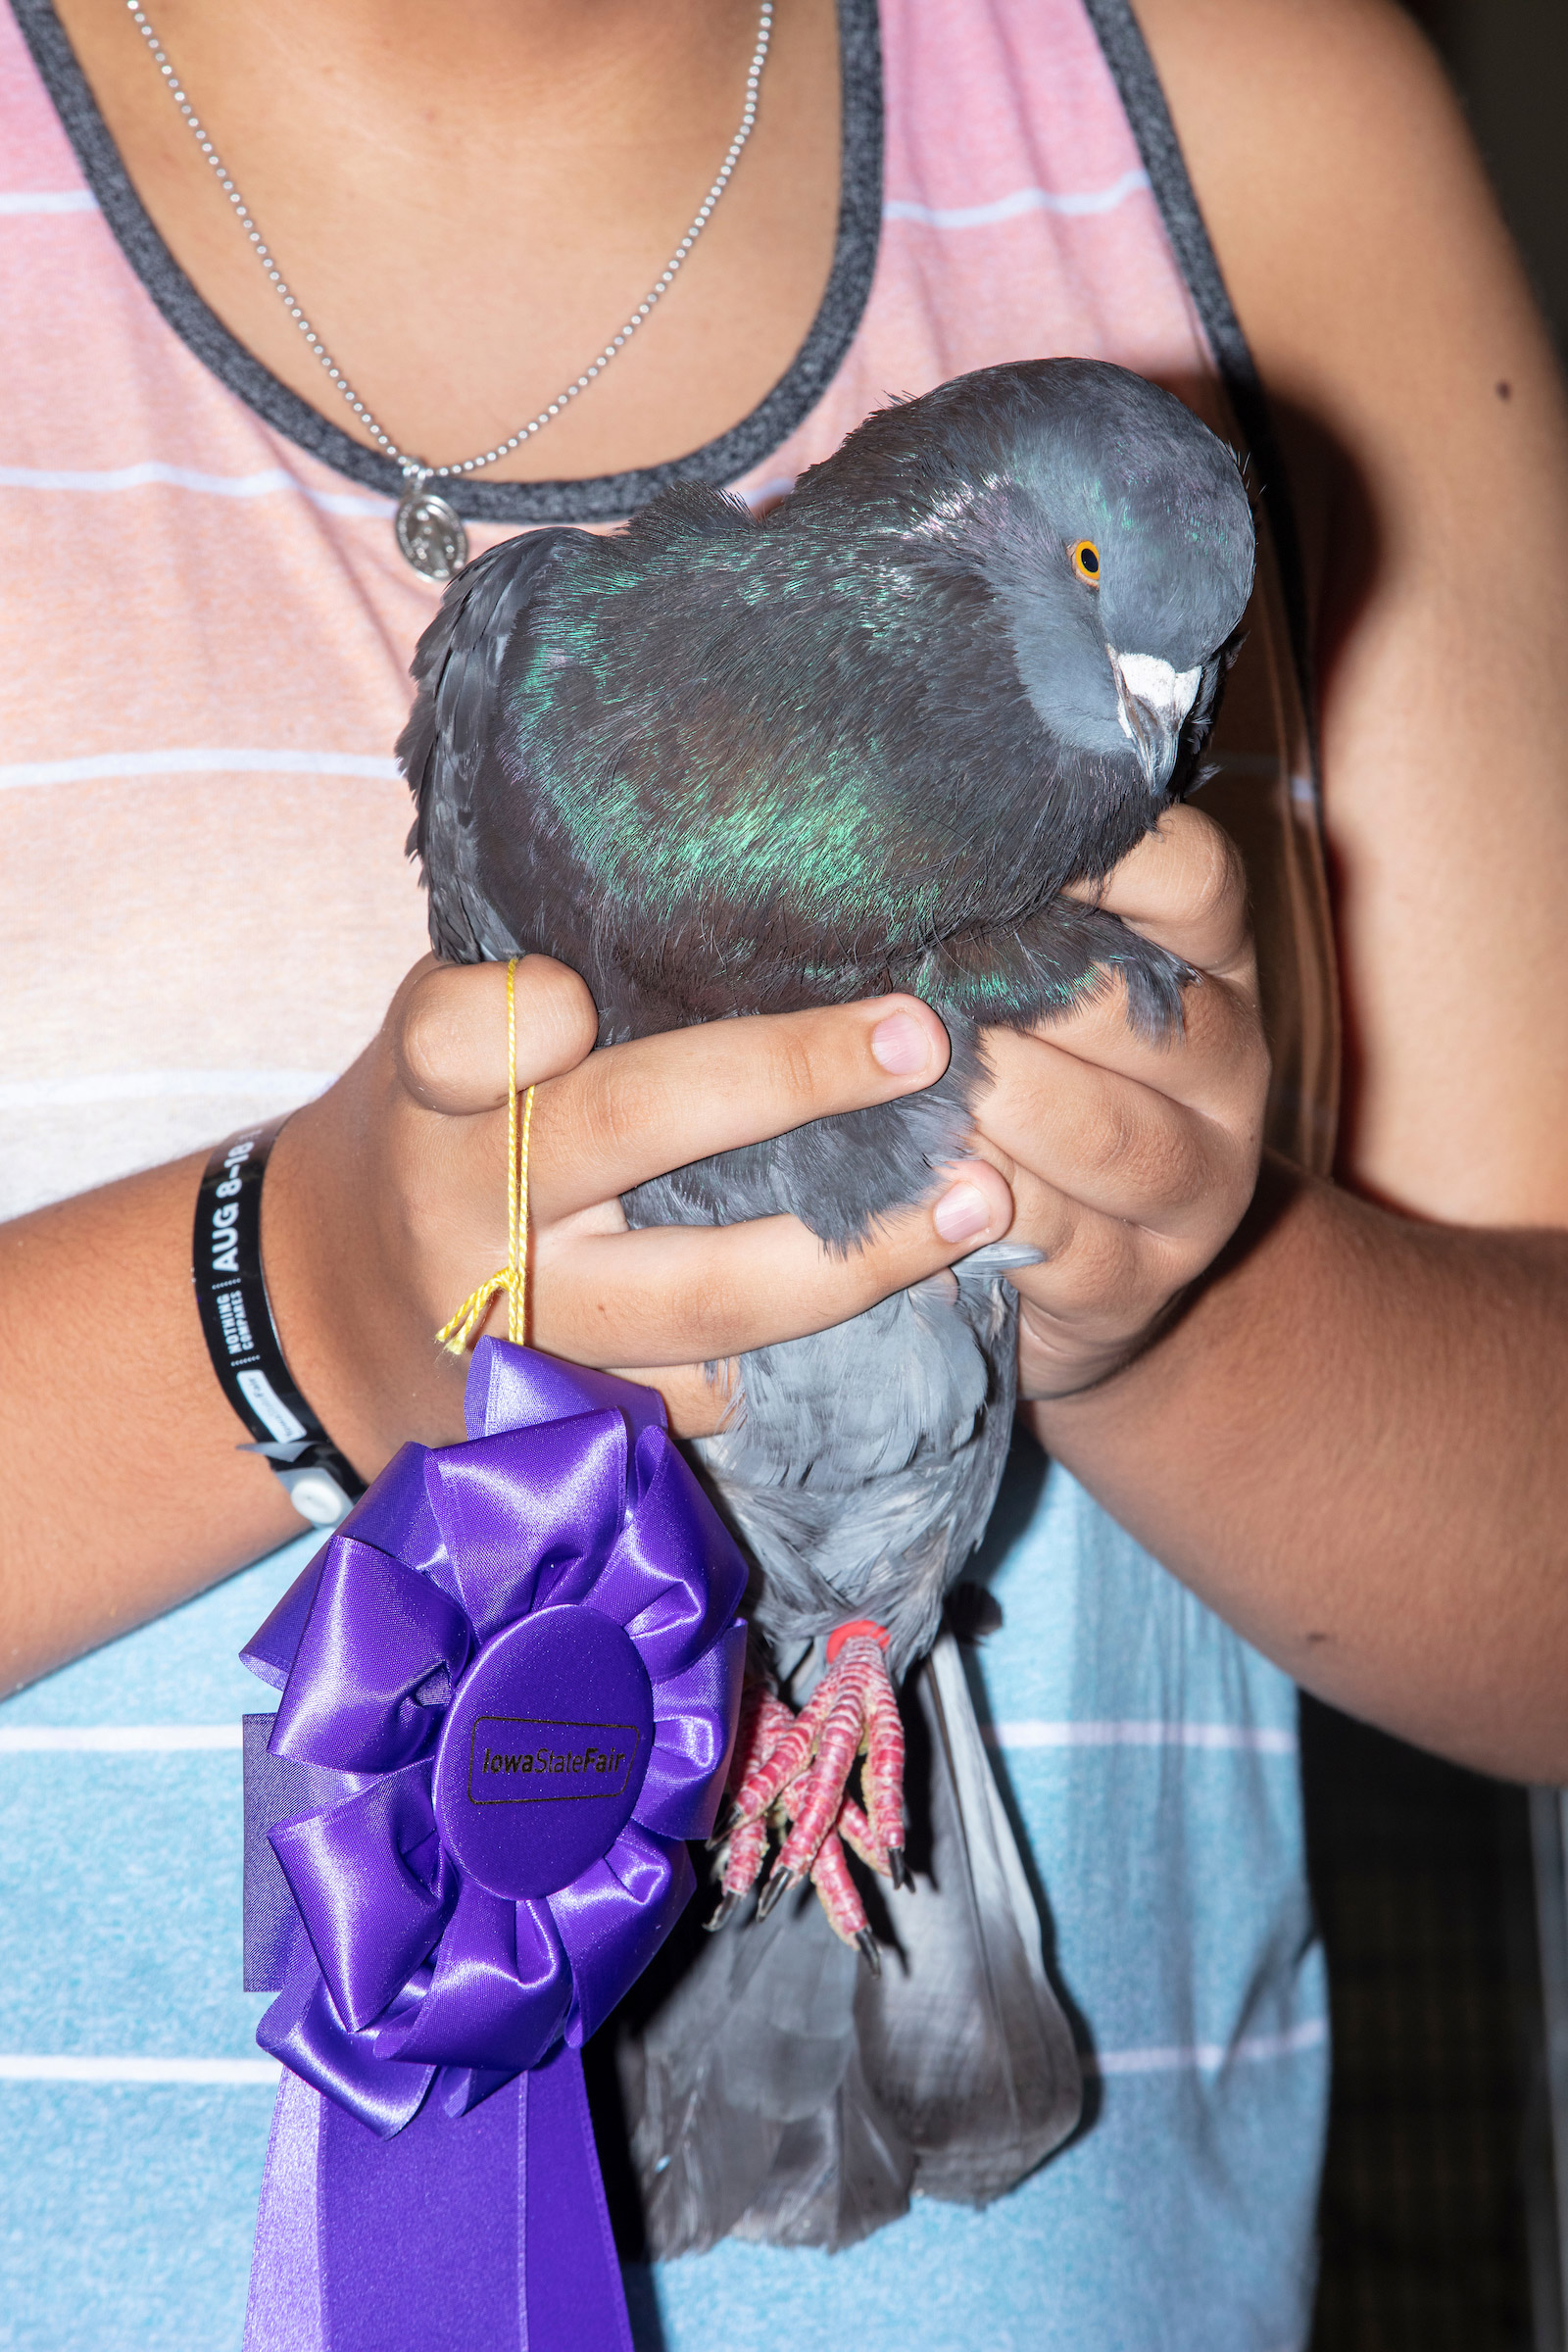 Jett Thomas, 17, of Carlisle, Iowa, holds his 2.1 pound pigeon after judging in the Heaviest and Lightest Pigeon Contest at the Iowa State Fair in Des Moines, Iowa, on Mon., Aug. 12, 2019. Thomas won the contest for heaviest pigeon, as he has done so for the past 7 or 8 years. He says his key to winning is a secret. Thomas is on the autism spectrum, and family members say that this contest helps get him out of his shell.